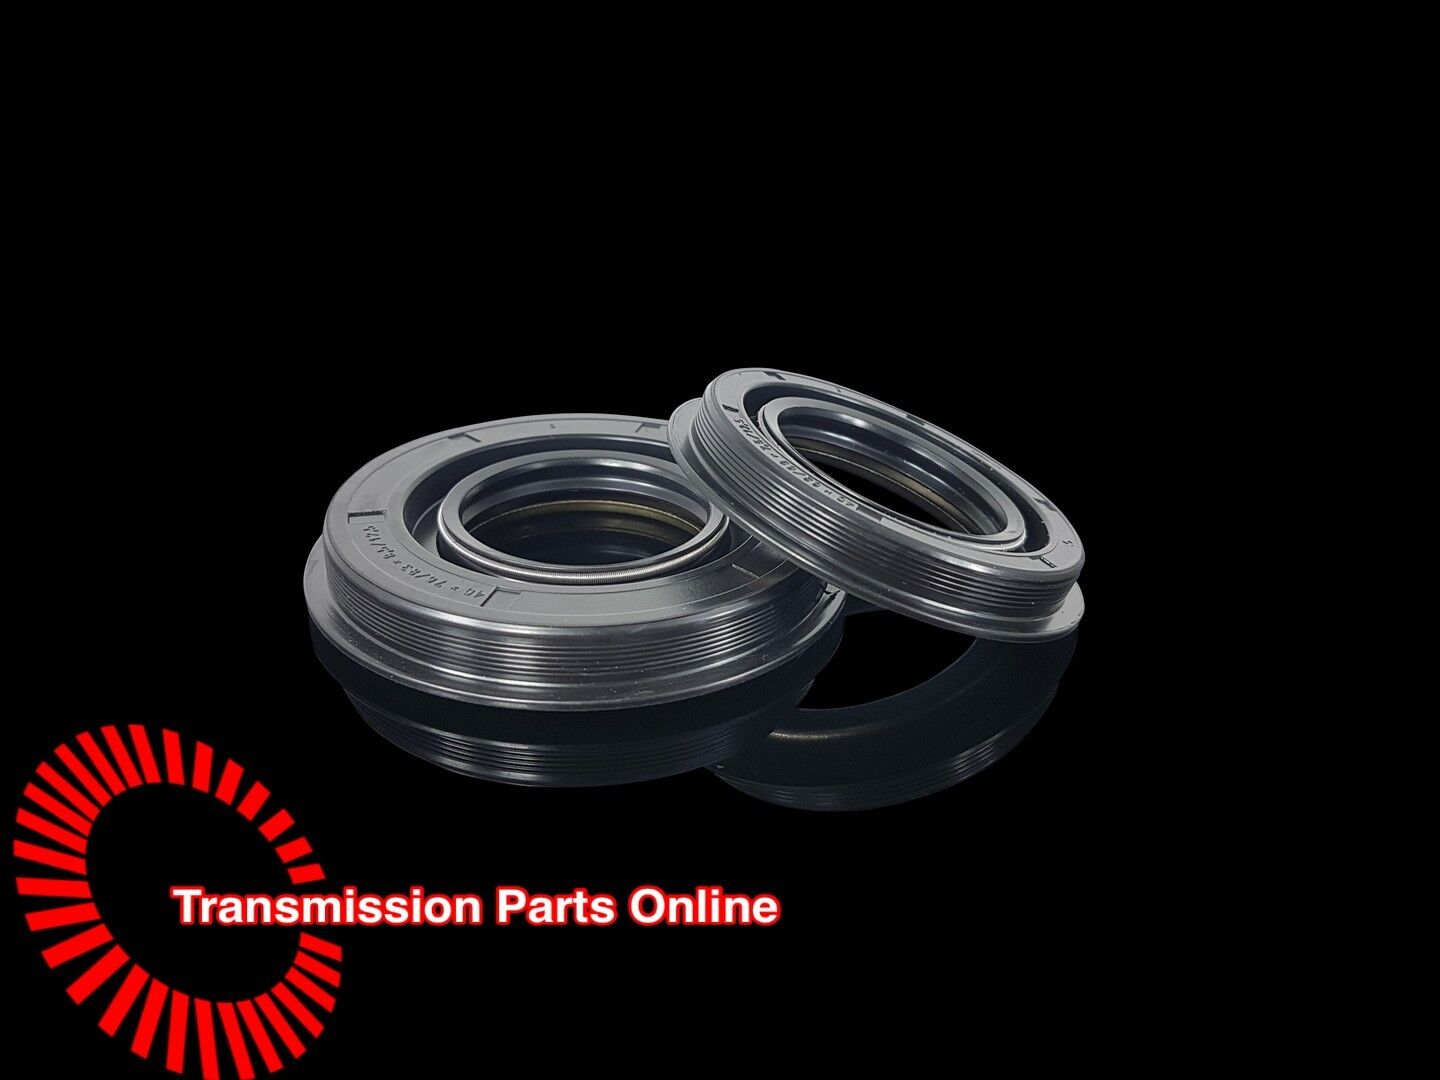 DRIVE SHAFT OIL SEAL PAIR MG 1.8 VVTi PG1 5 SPEED GEARBOX DIFF